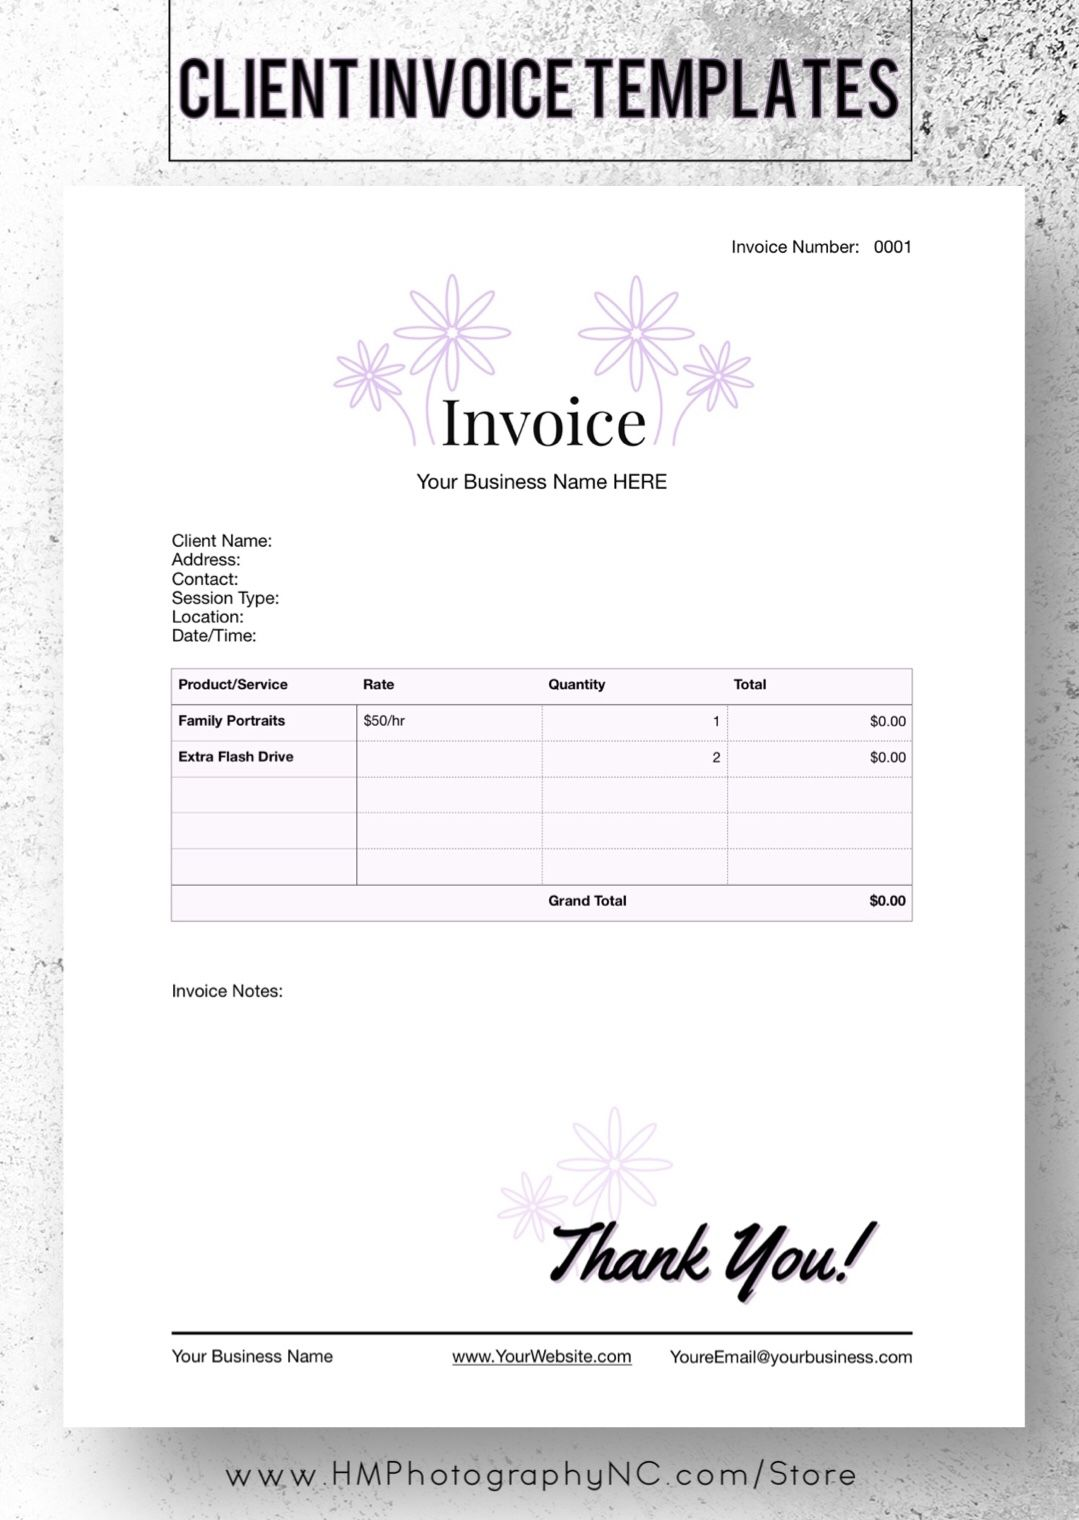 Client Invoice/Receipt Business Templates in 2020